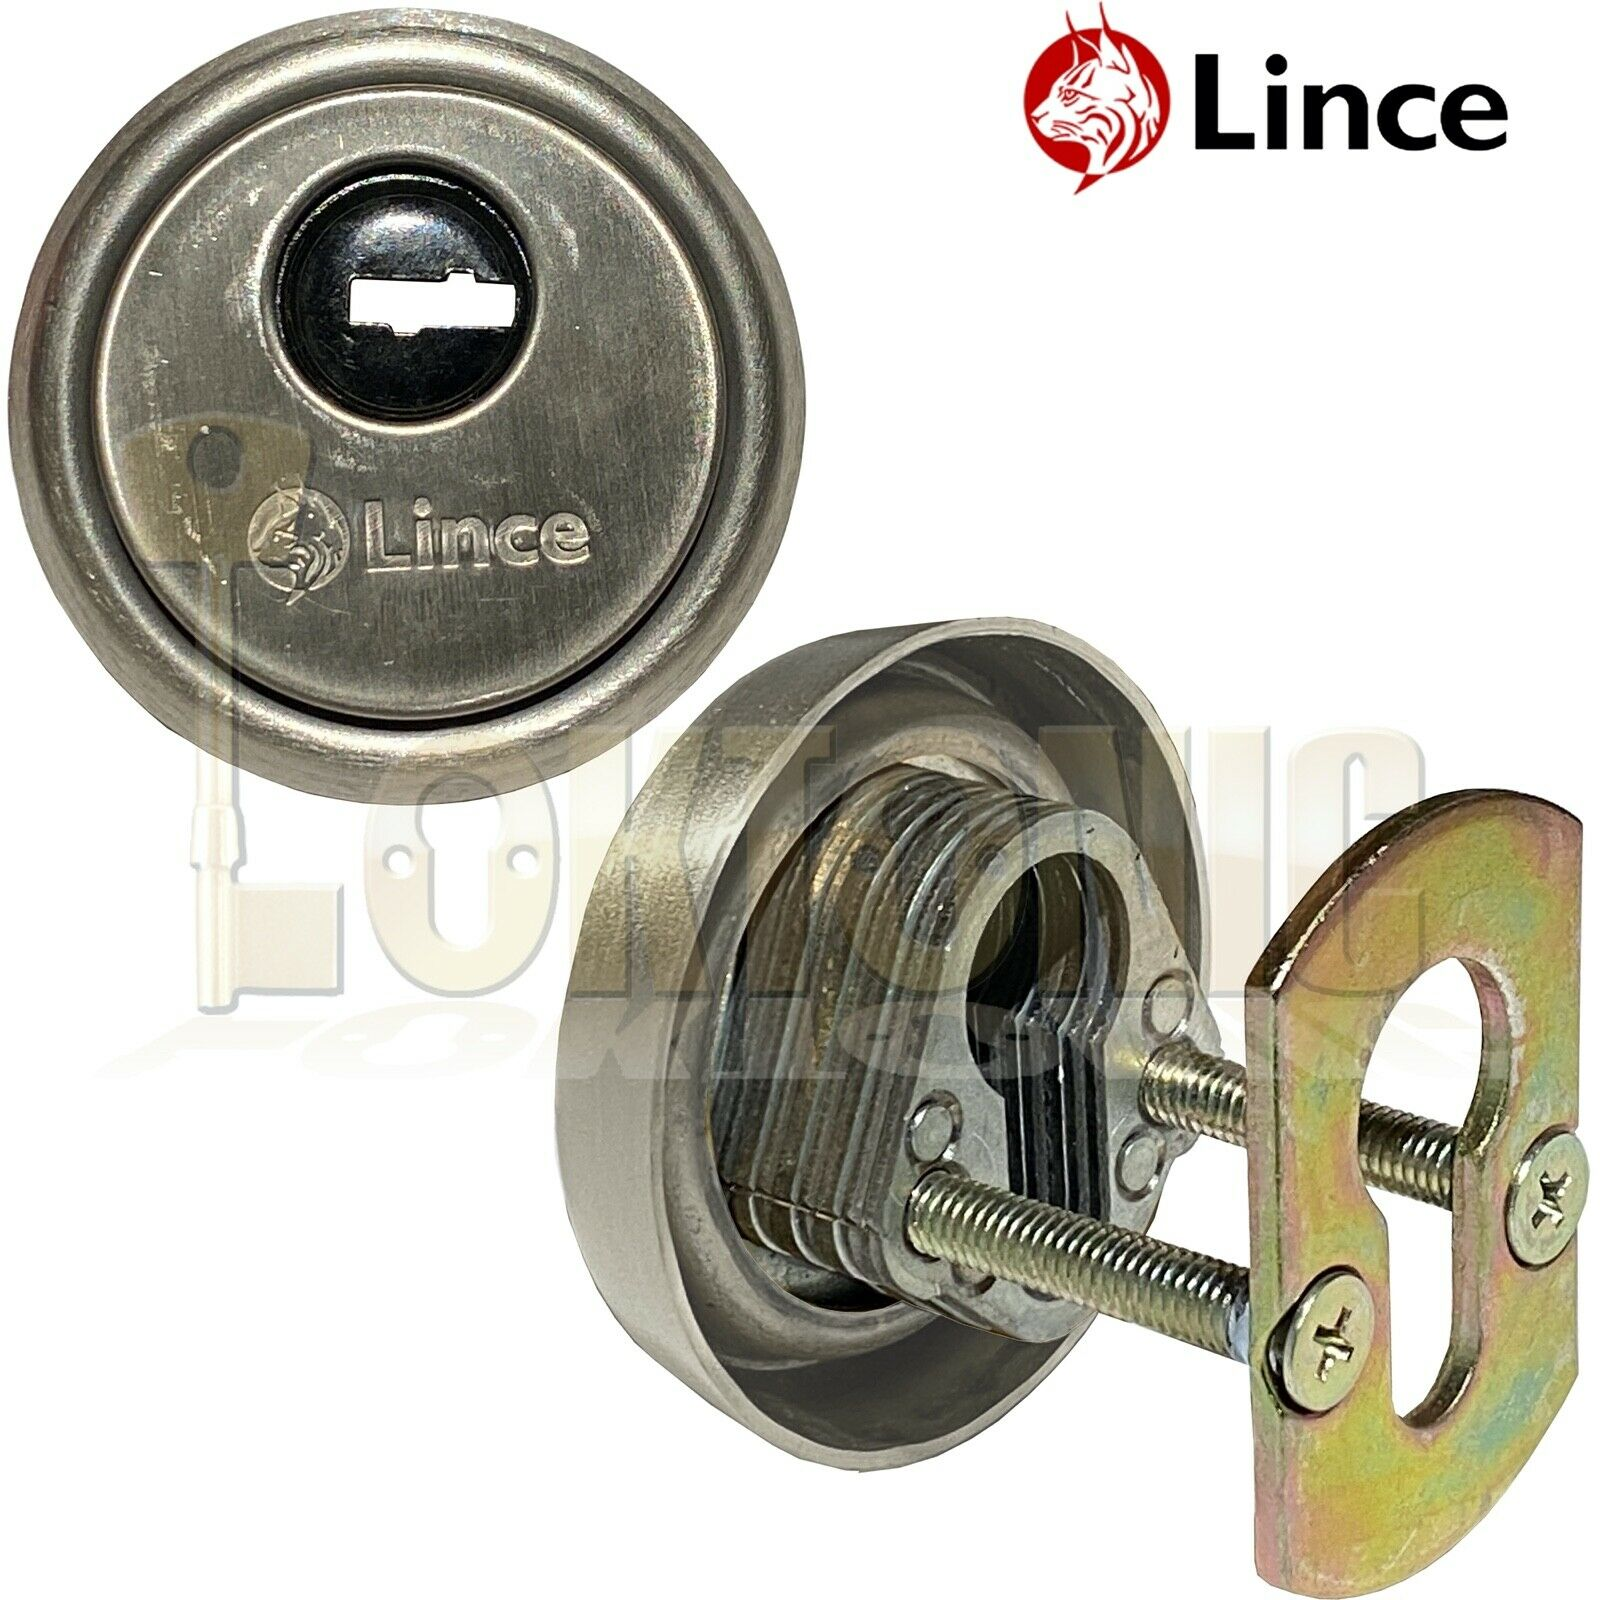 Lince Satin High Security Euro Cylinder Escutcheon Keyhole Cover Plate Van Doors